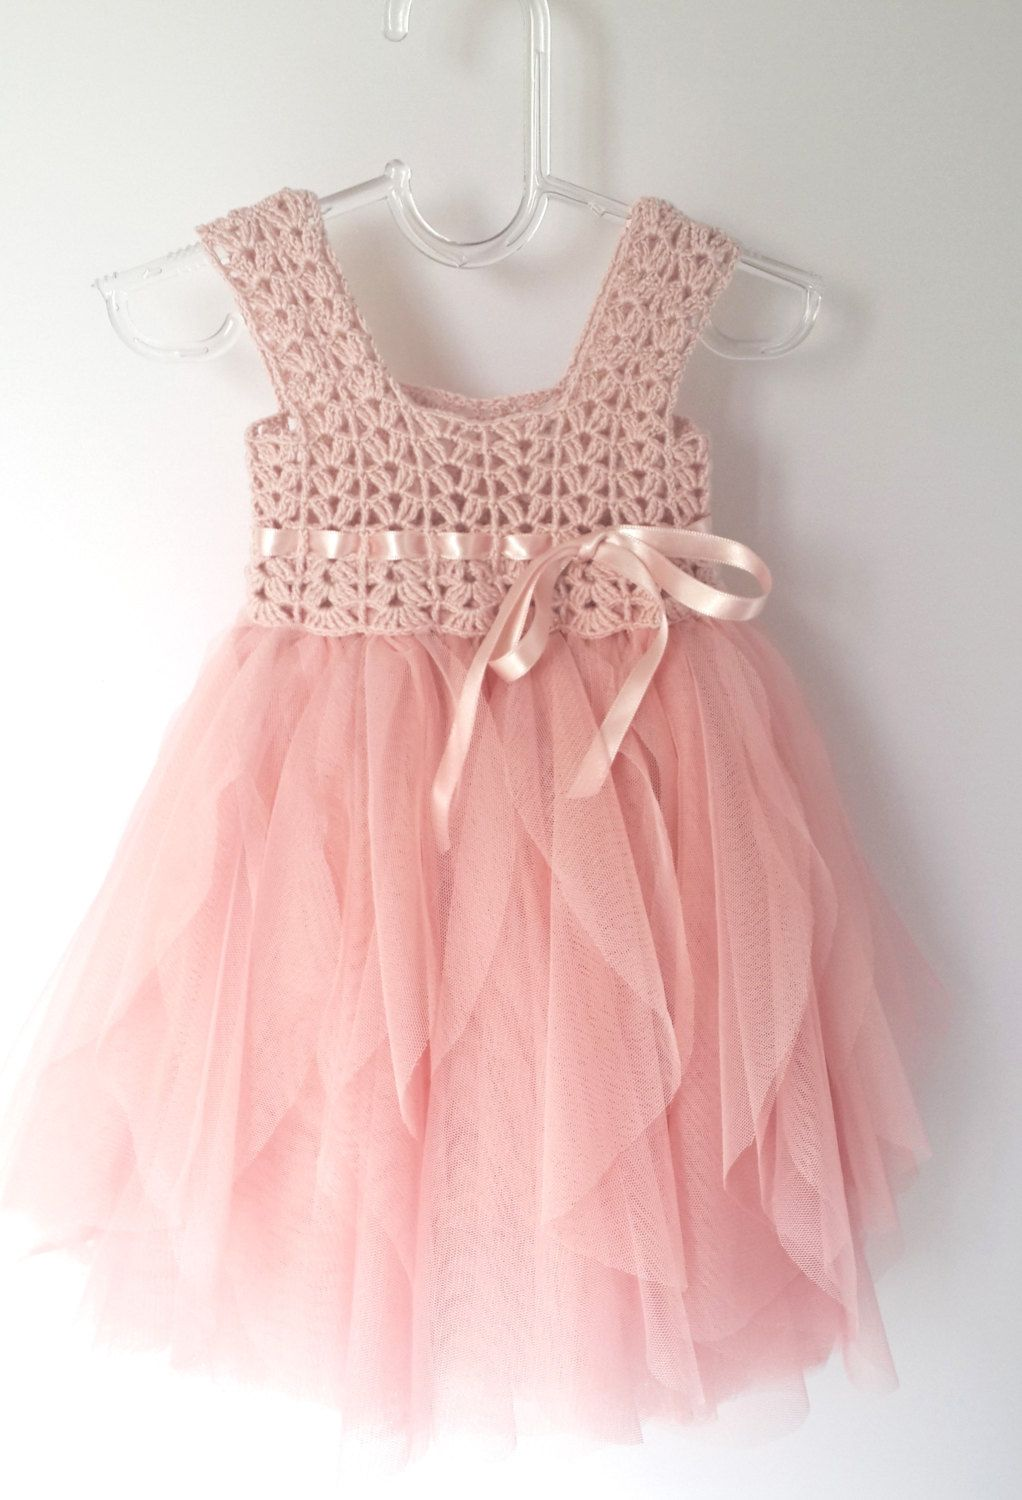 2a857e4b8fbd Blush Pink Baby Tulle Dress with Empire Waist and Stretch Crochet ...